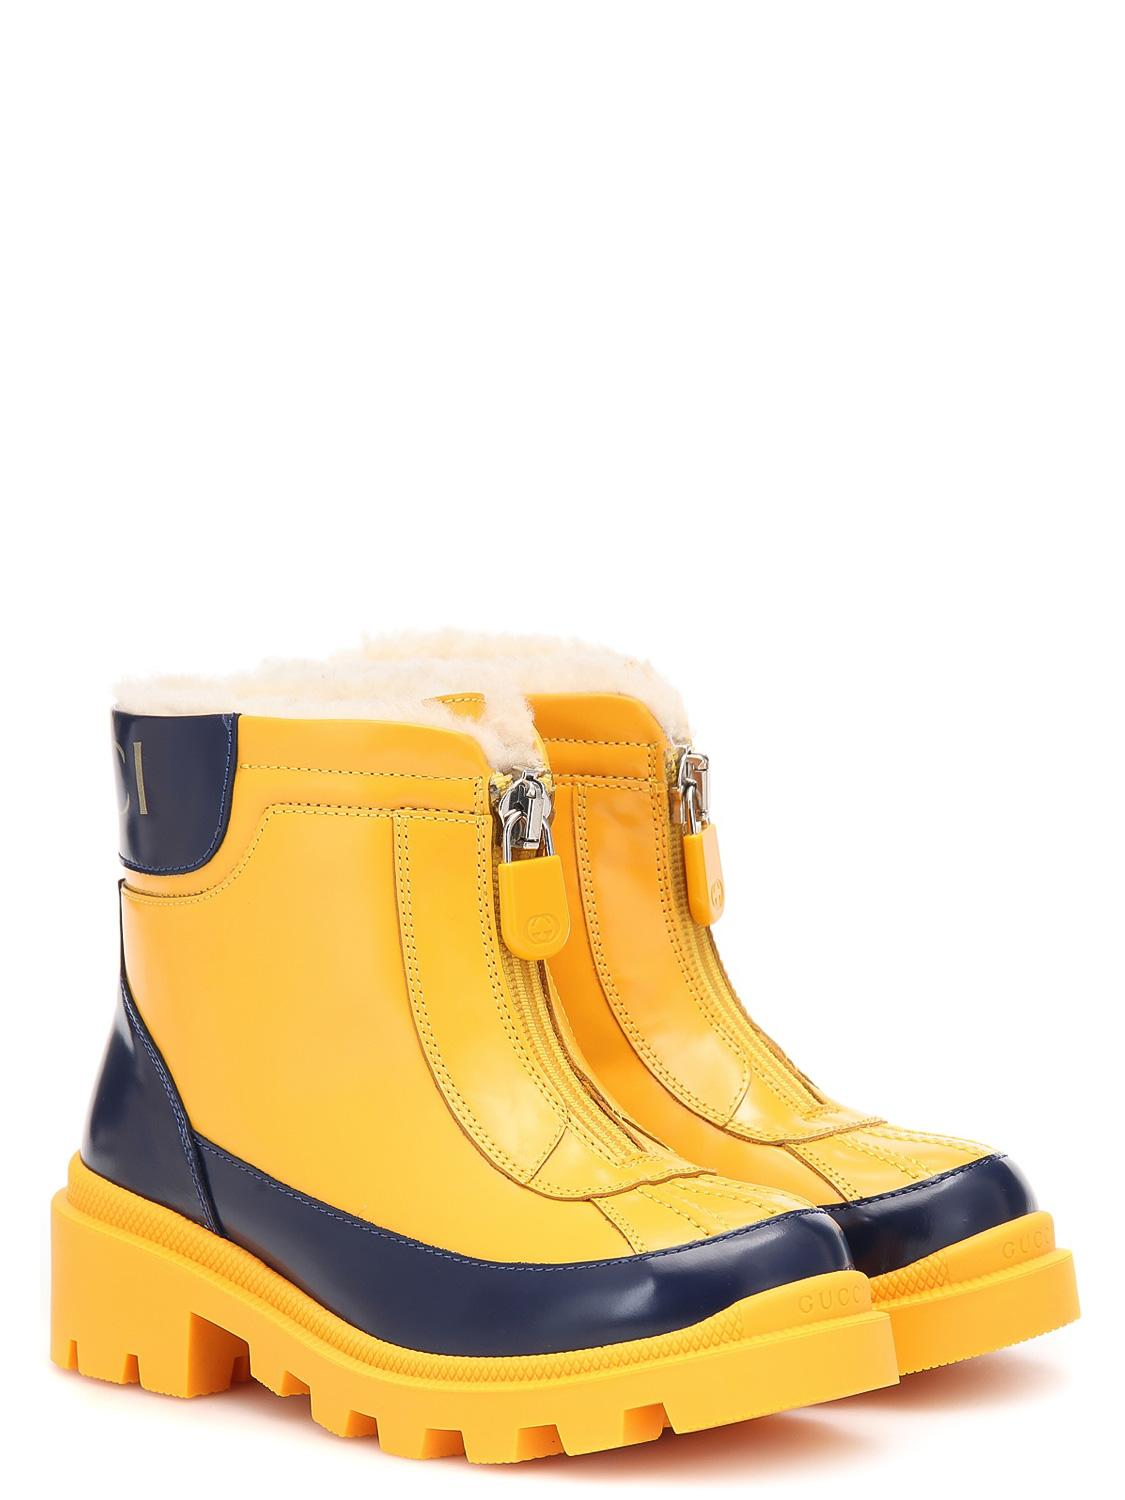 GUCCI boots yellow for girls| NICKIS.com